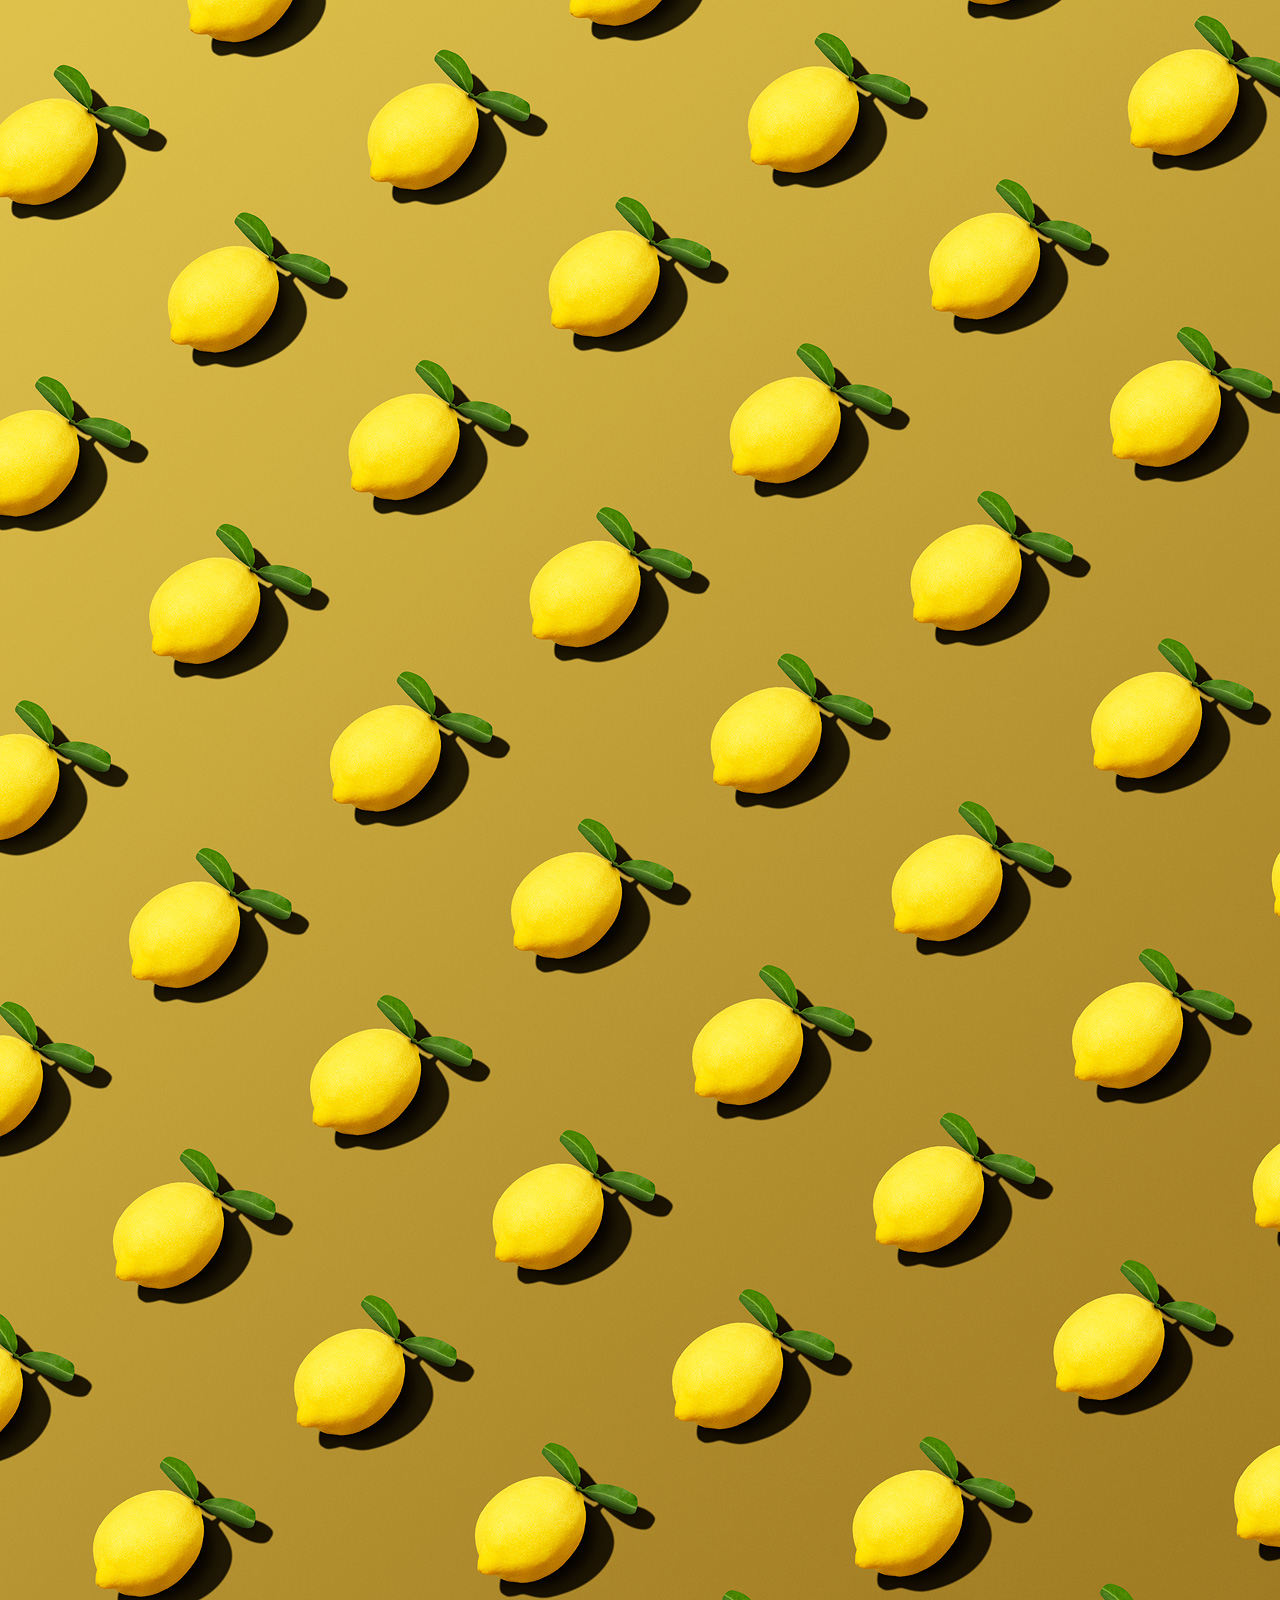 Lemons by Vancouver Food And Product Photographer